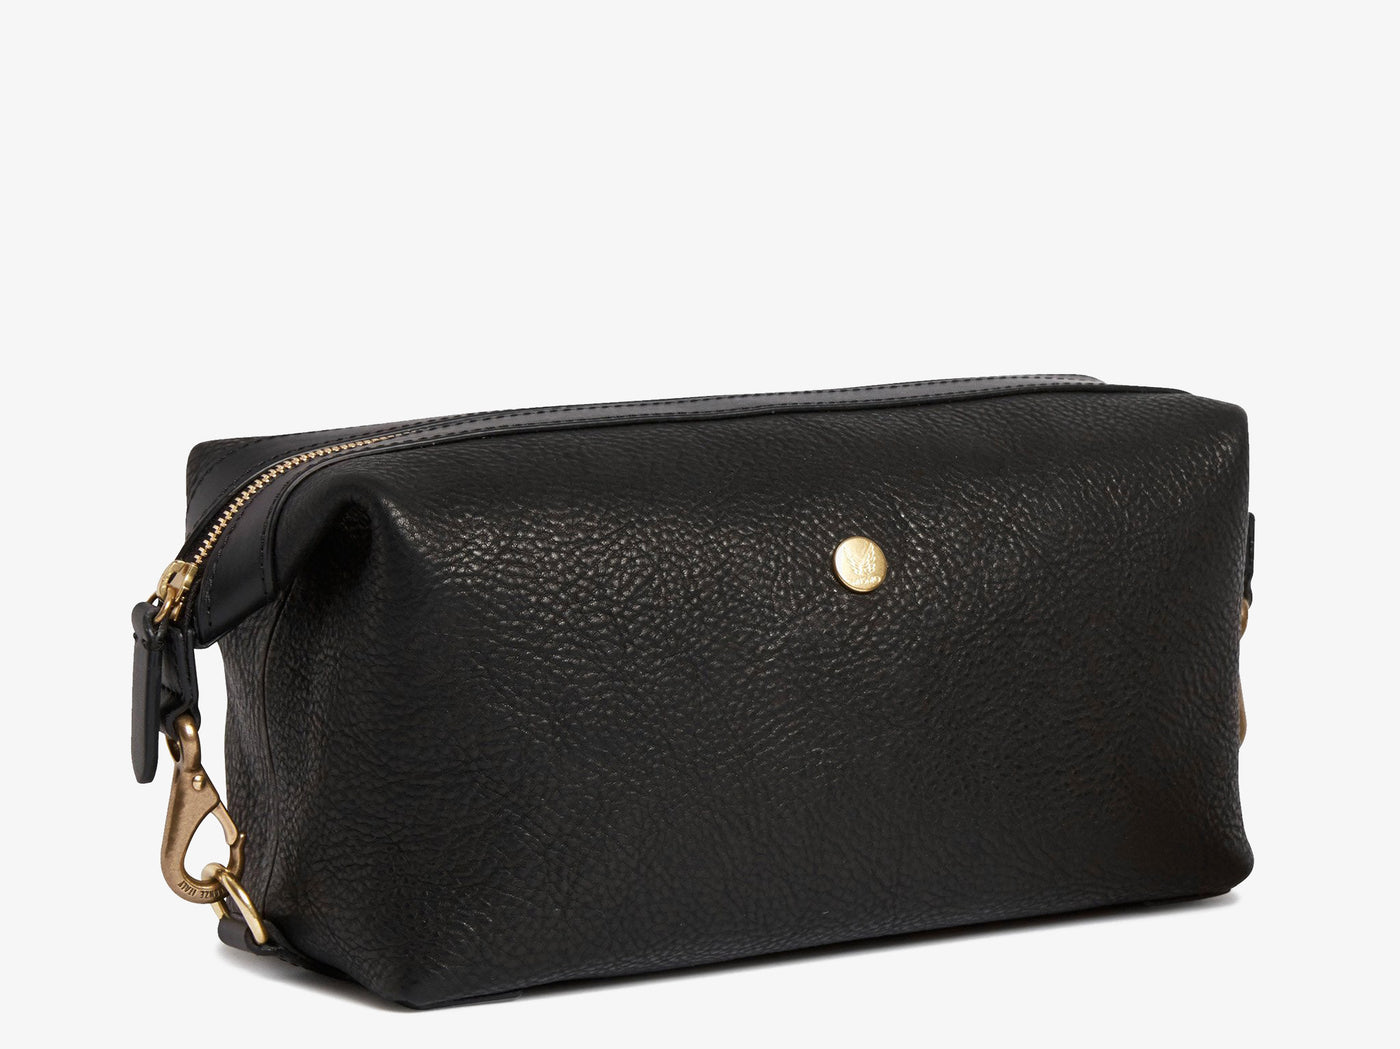 Washbag, Leather - Black/Black